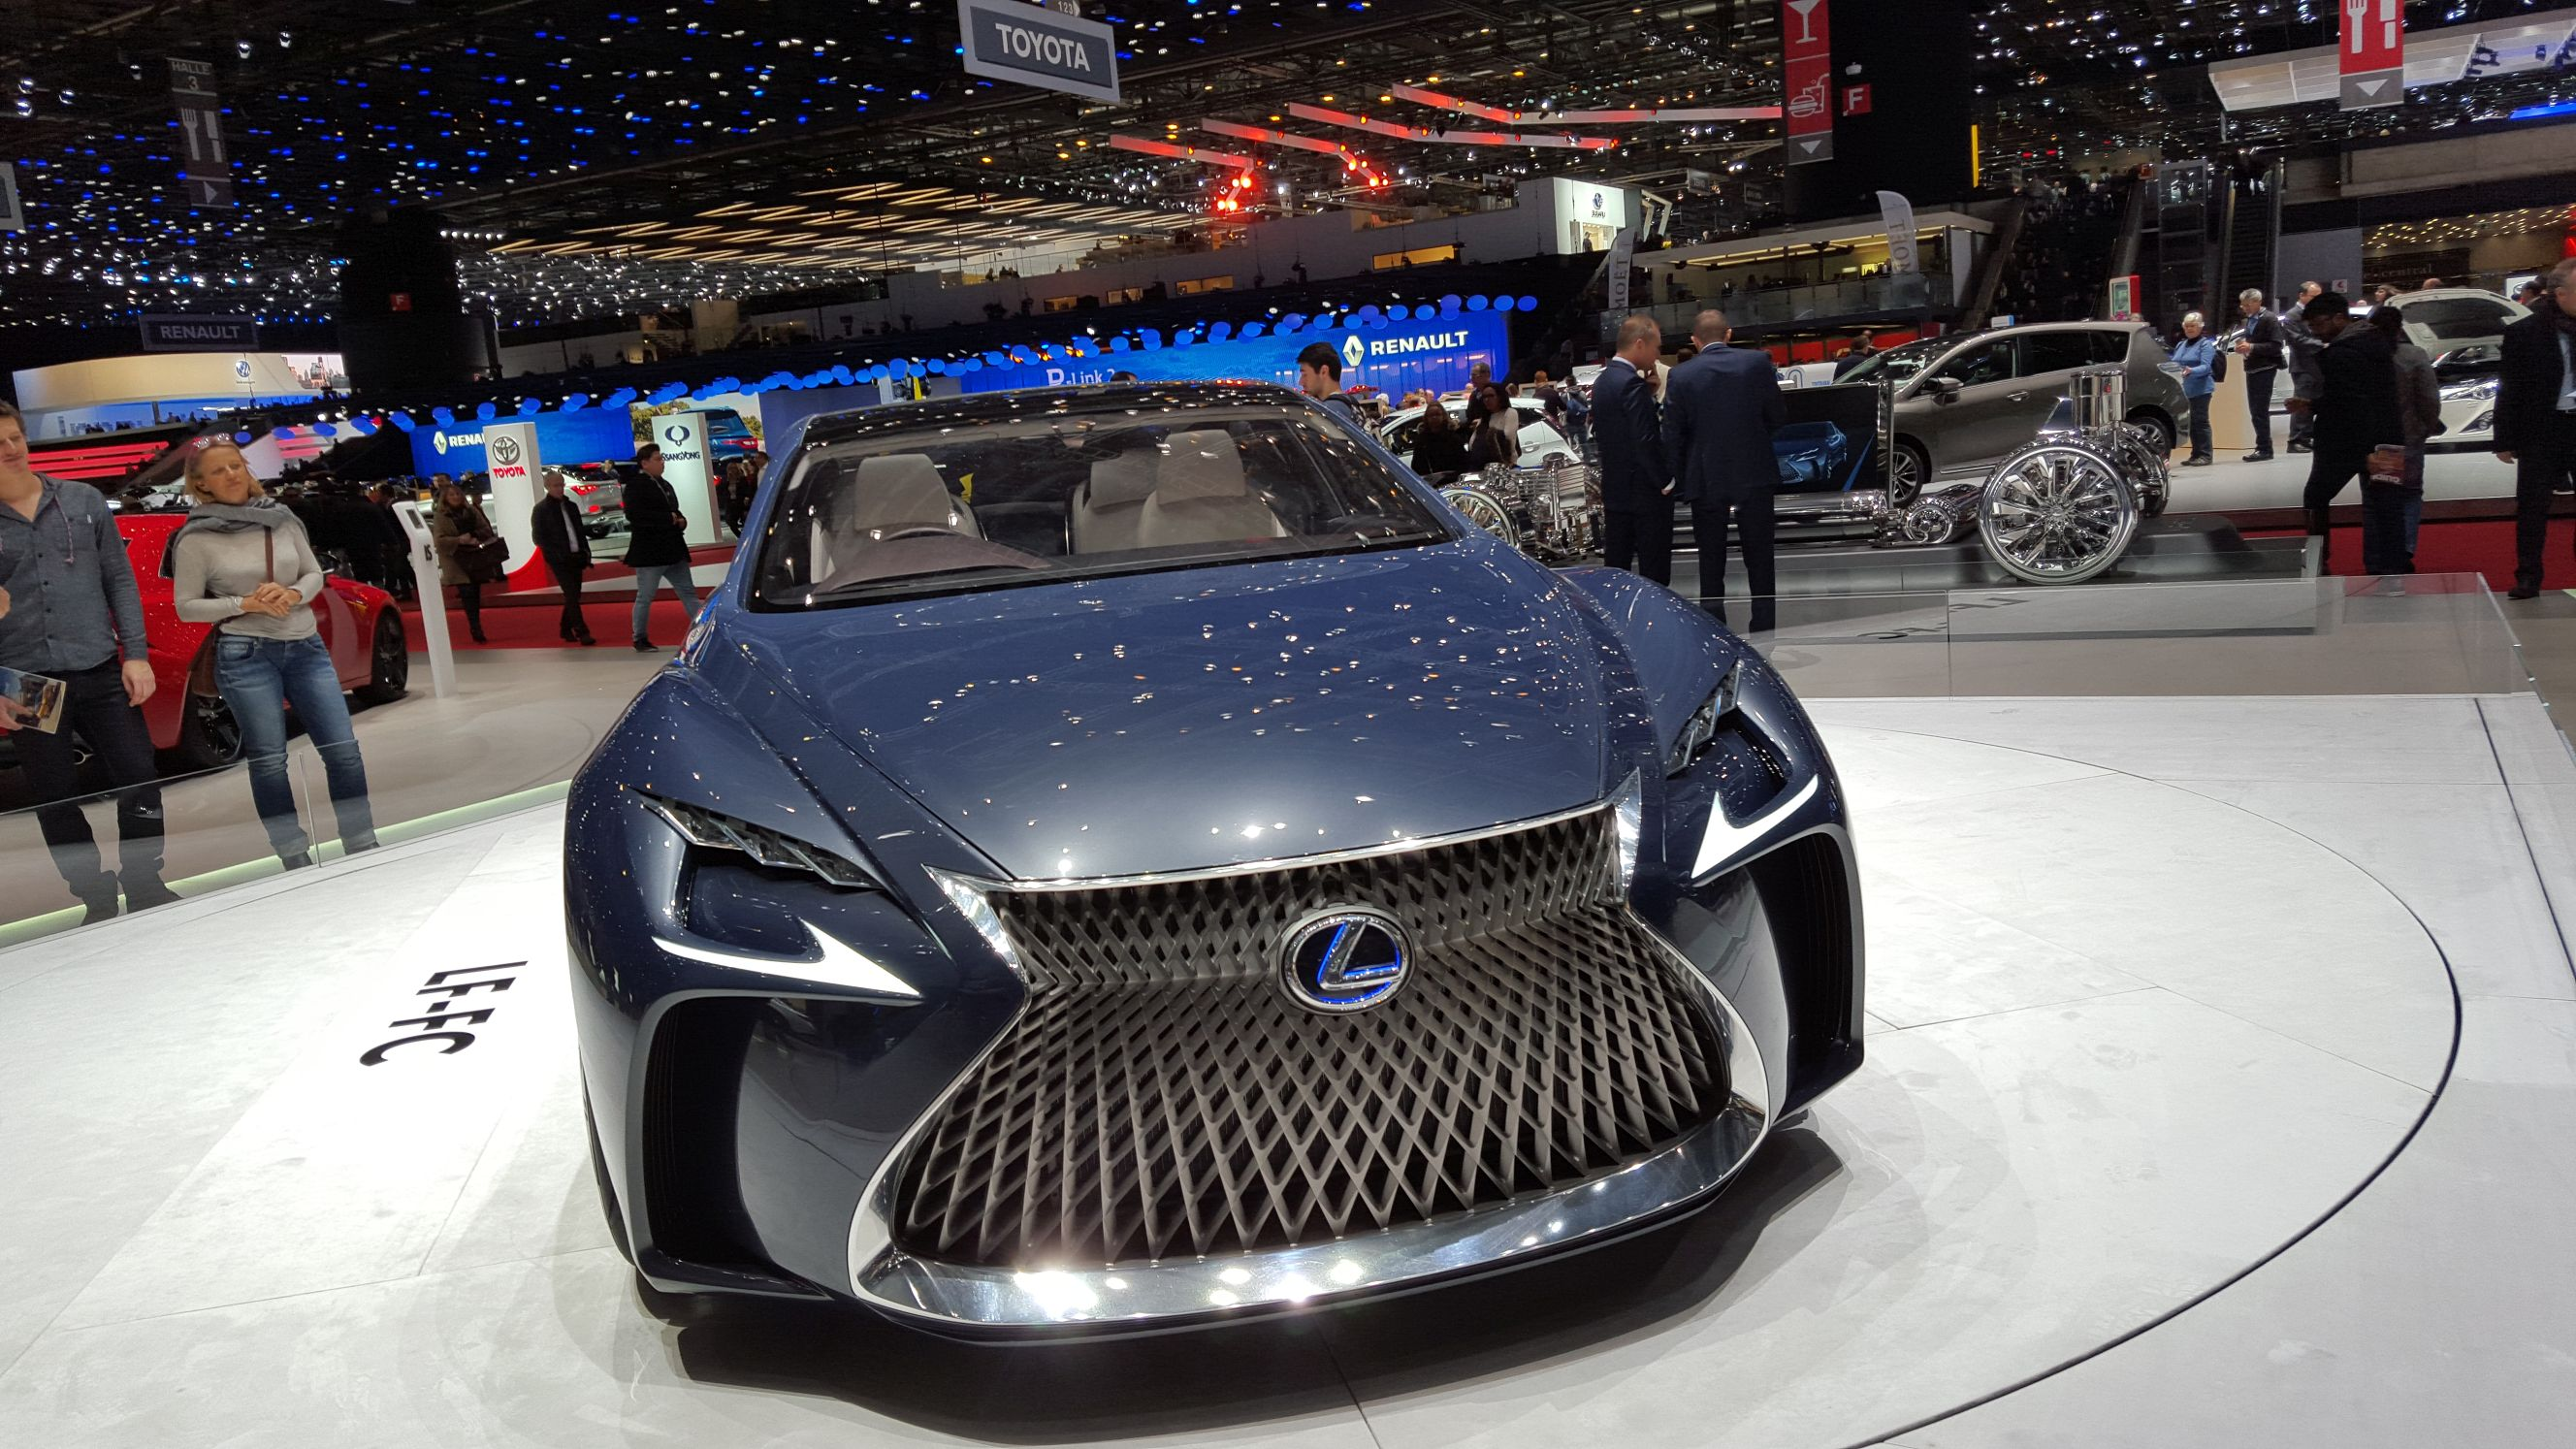 The Great Tech Used In It But Because I And Many Others Including Elon Musk Think Hydrogen Is Really Last Resort Option We Should Use Cars